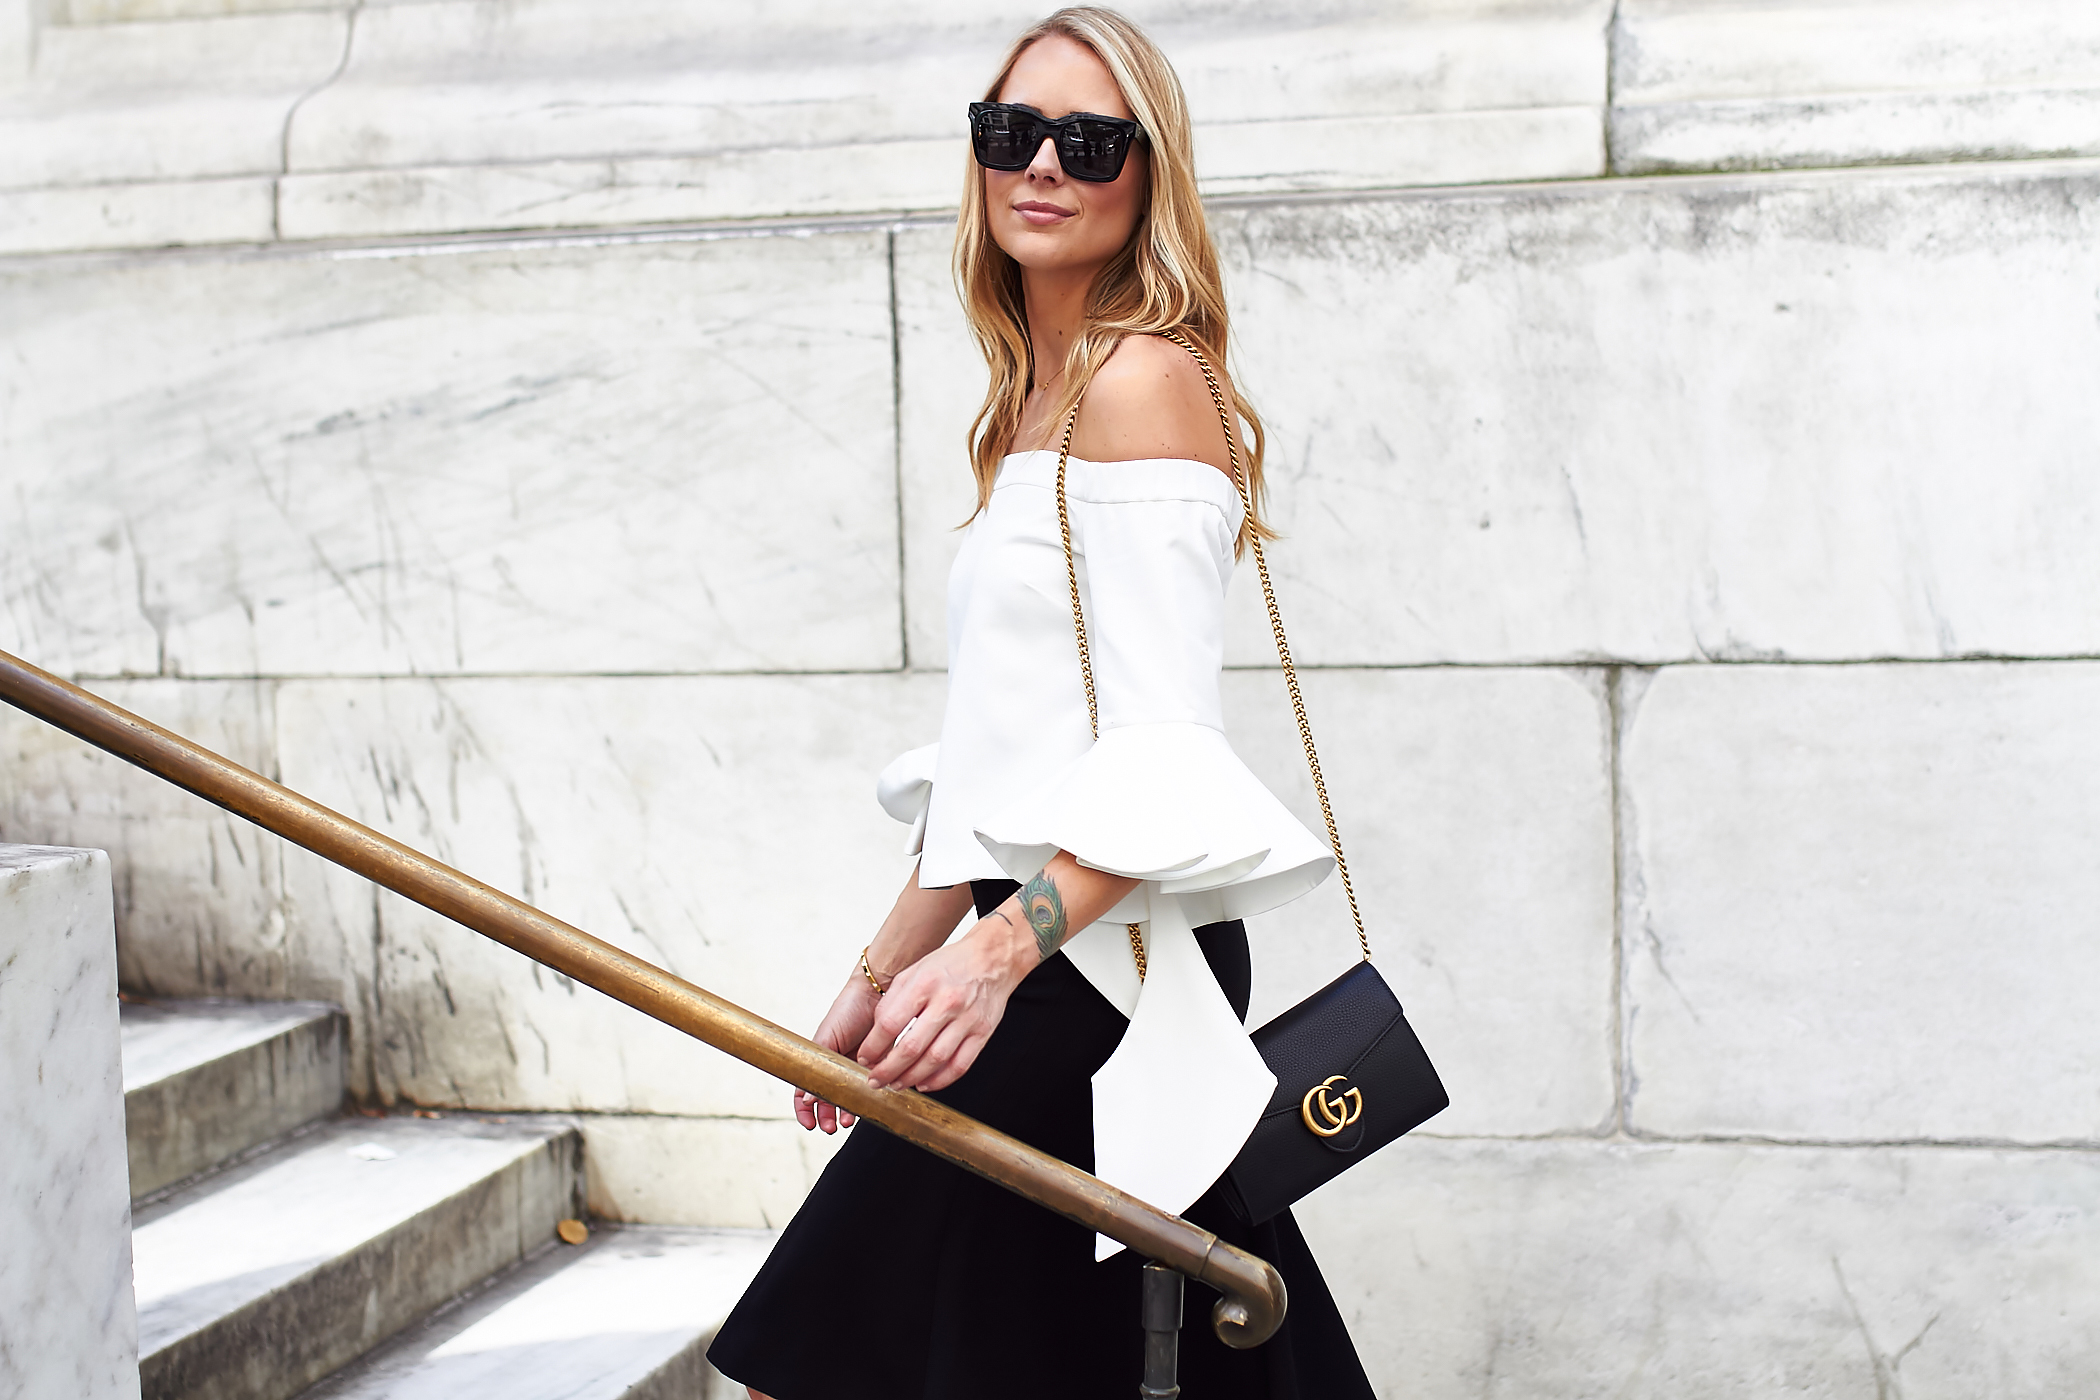 fashion-jackson-chicwish-white-off-the-shoulder-ruffle-sleeve-top-black-celine-sunglasses-gucci-marmont-handbag